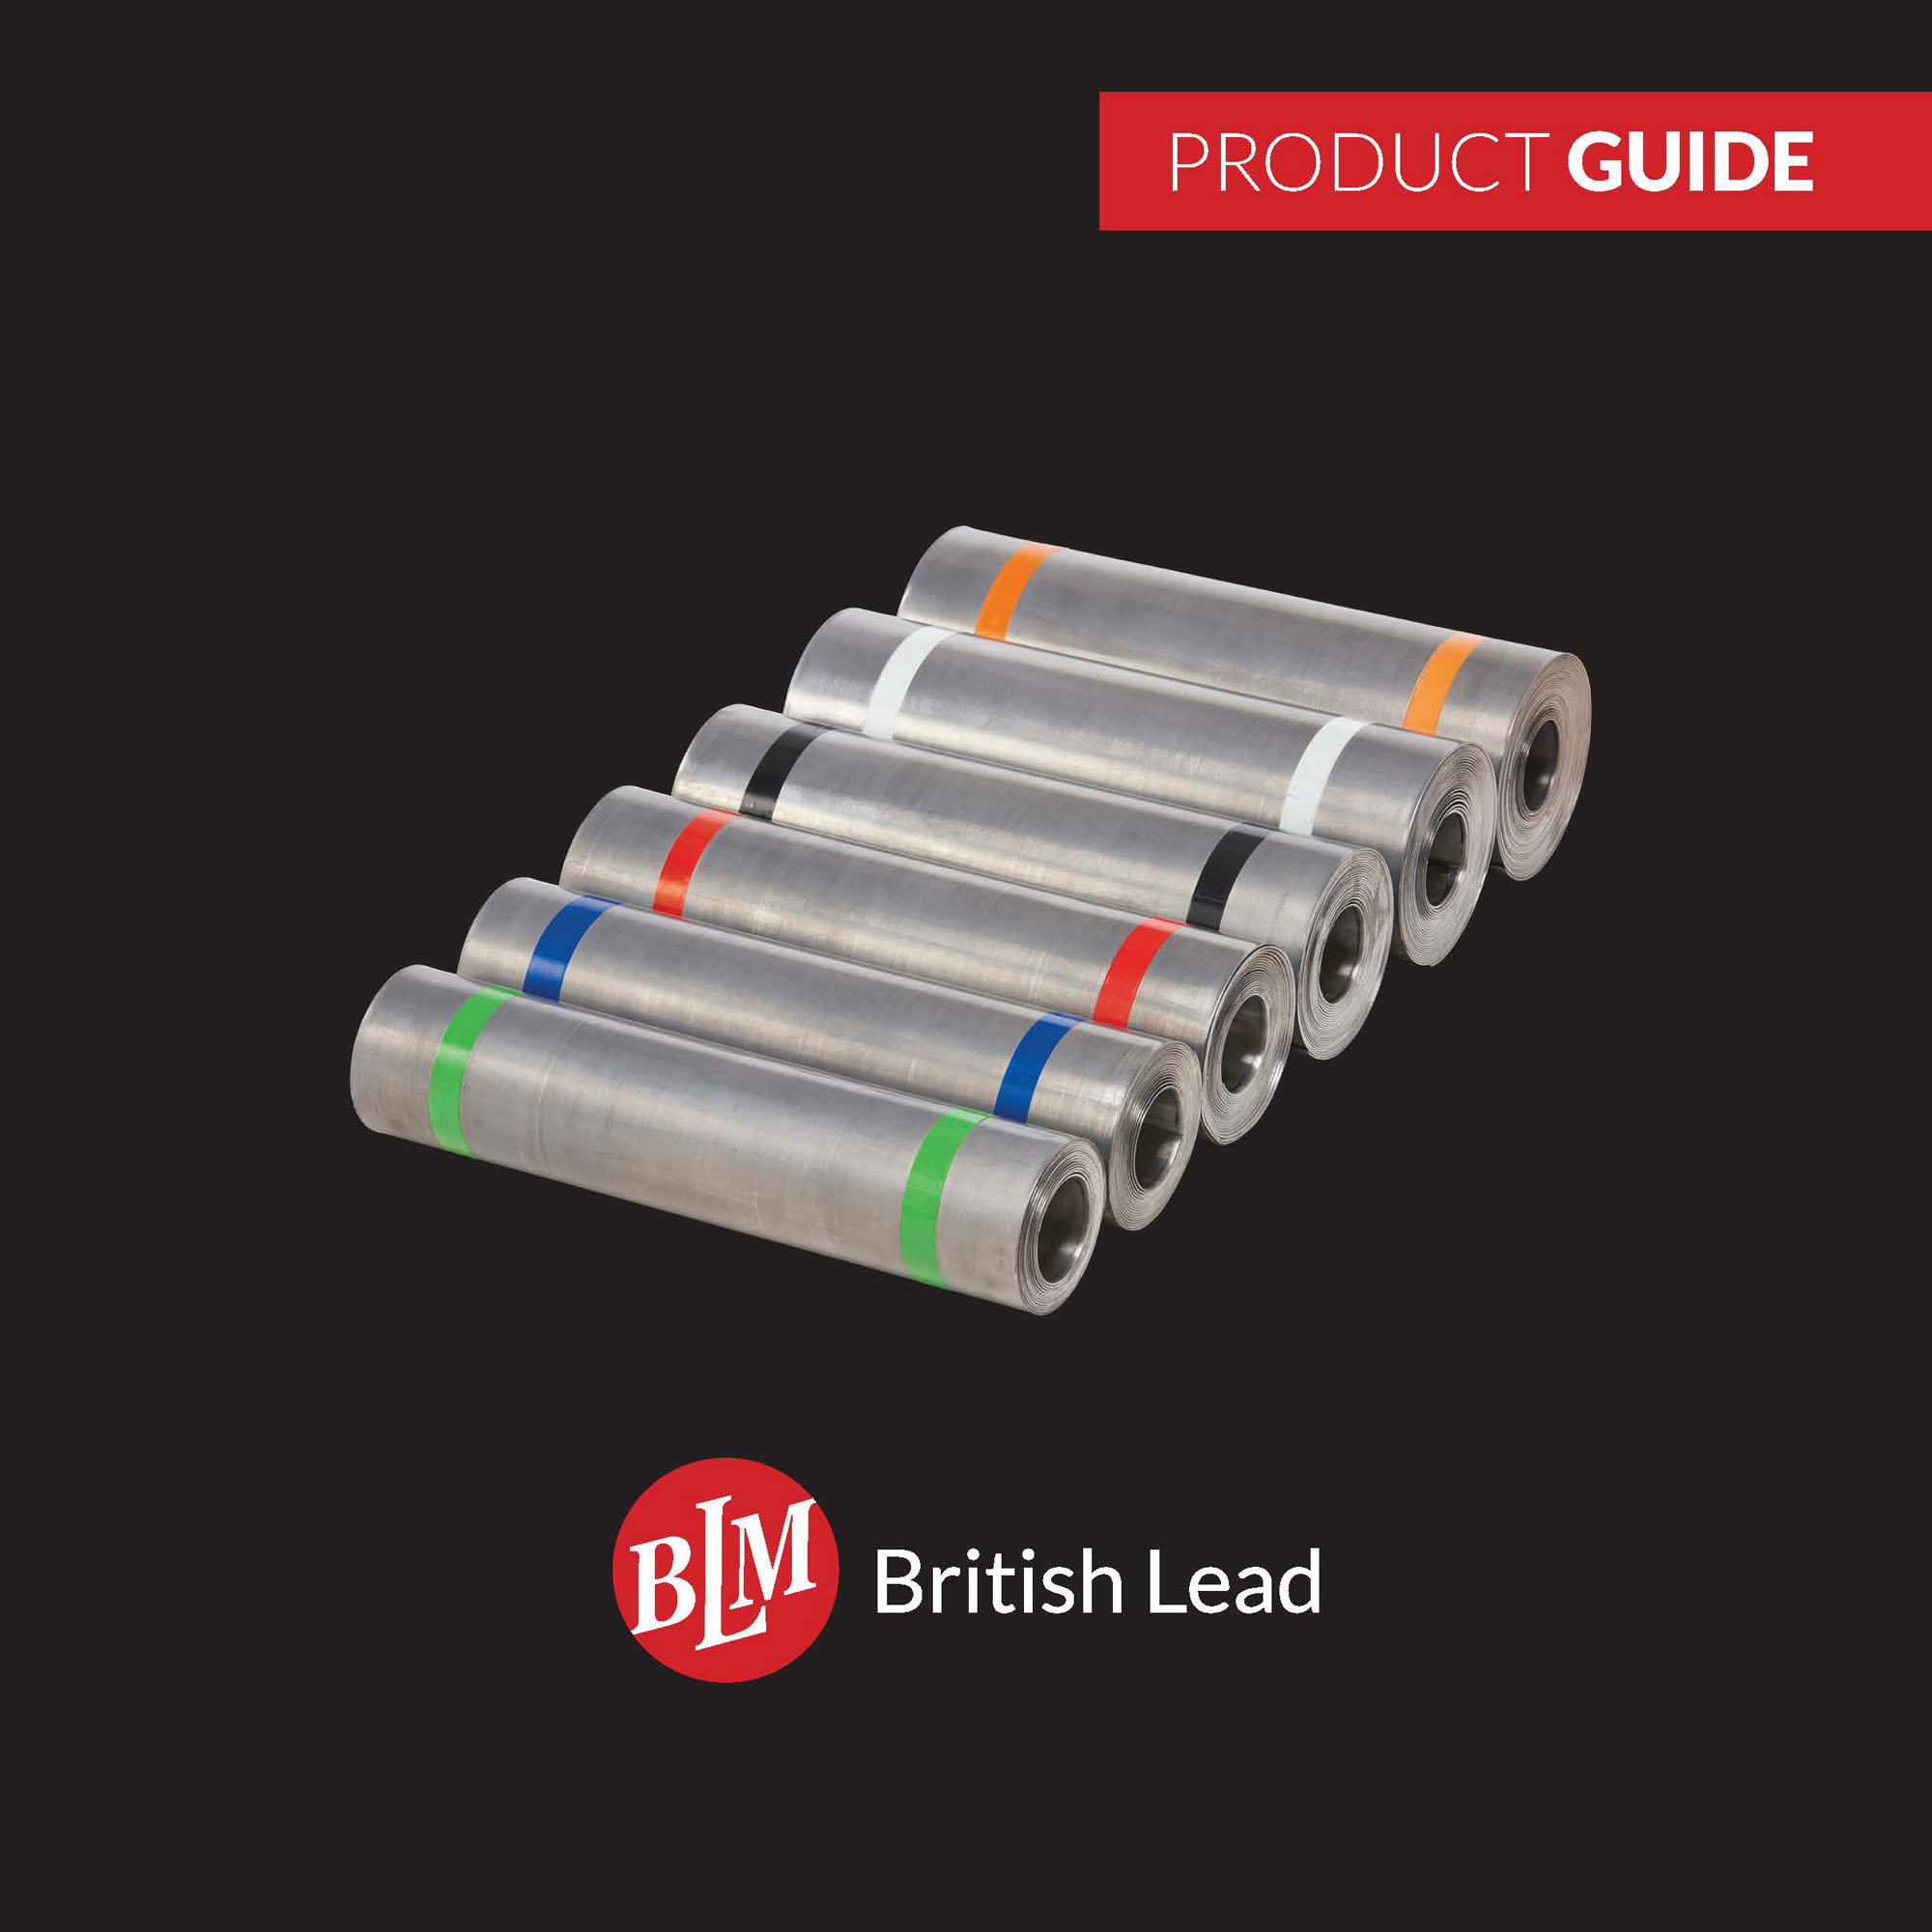 British_Lead_Product_Guide1.jpg